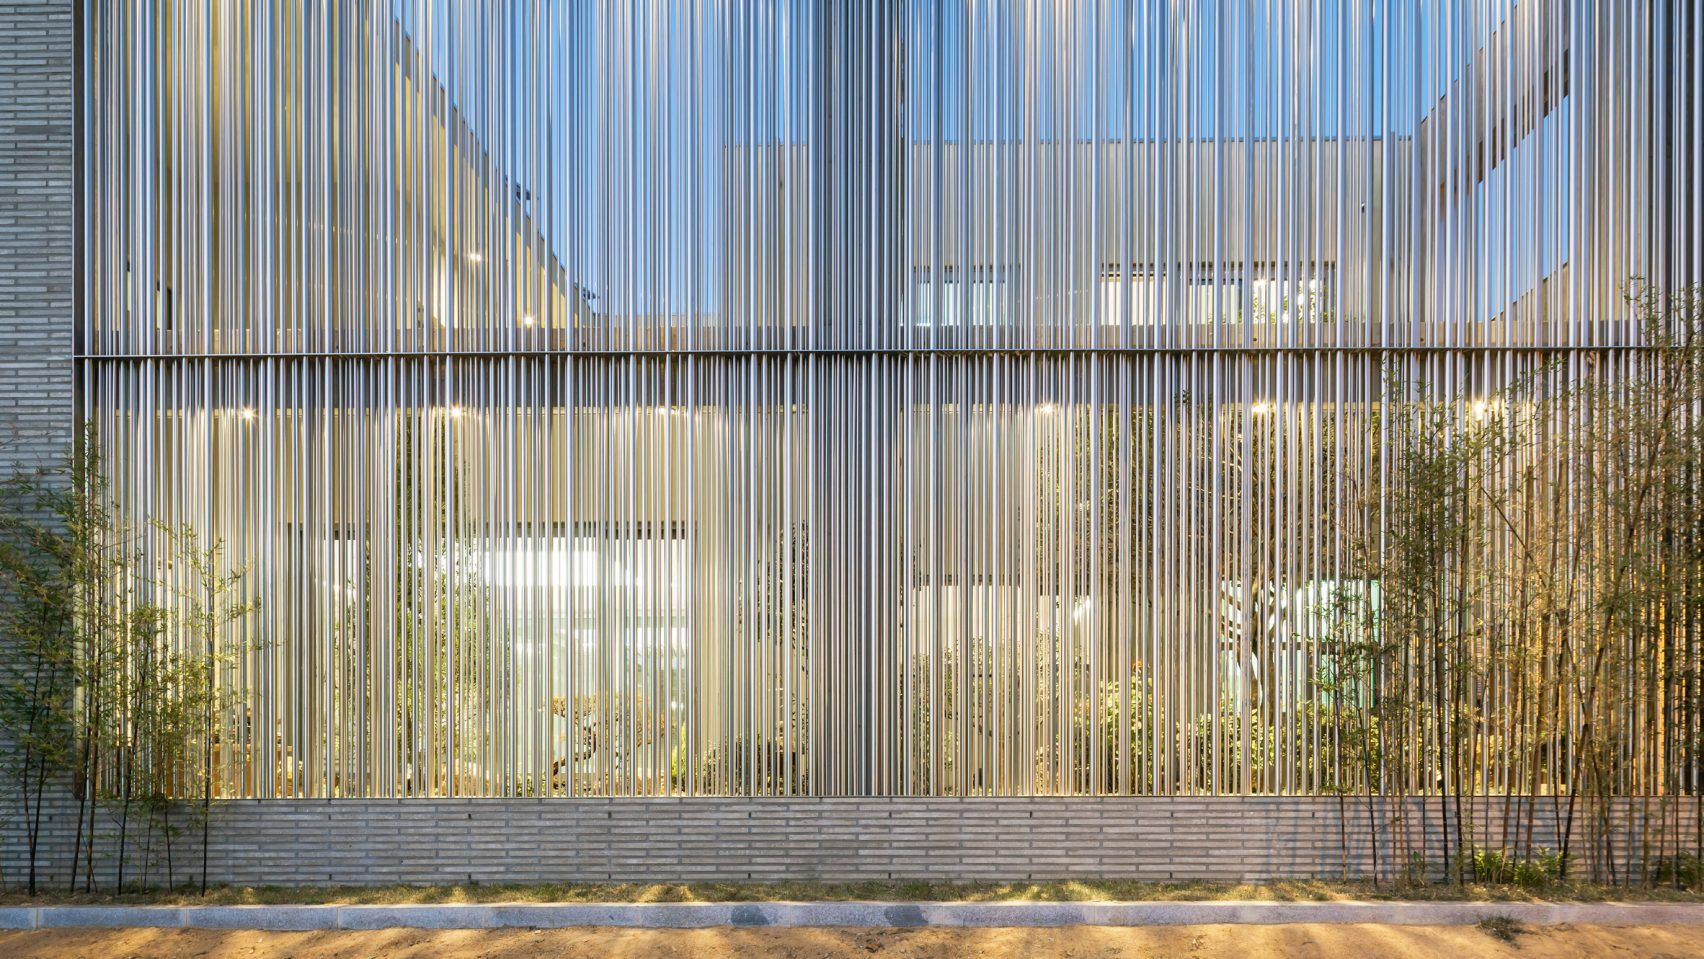 steel-grove-augmented-reality-architecture-residential-south-korea-courtyards-steel_dezeen_hero-1-1704x959.jpg